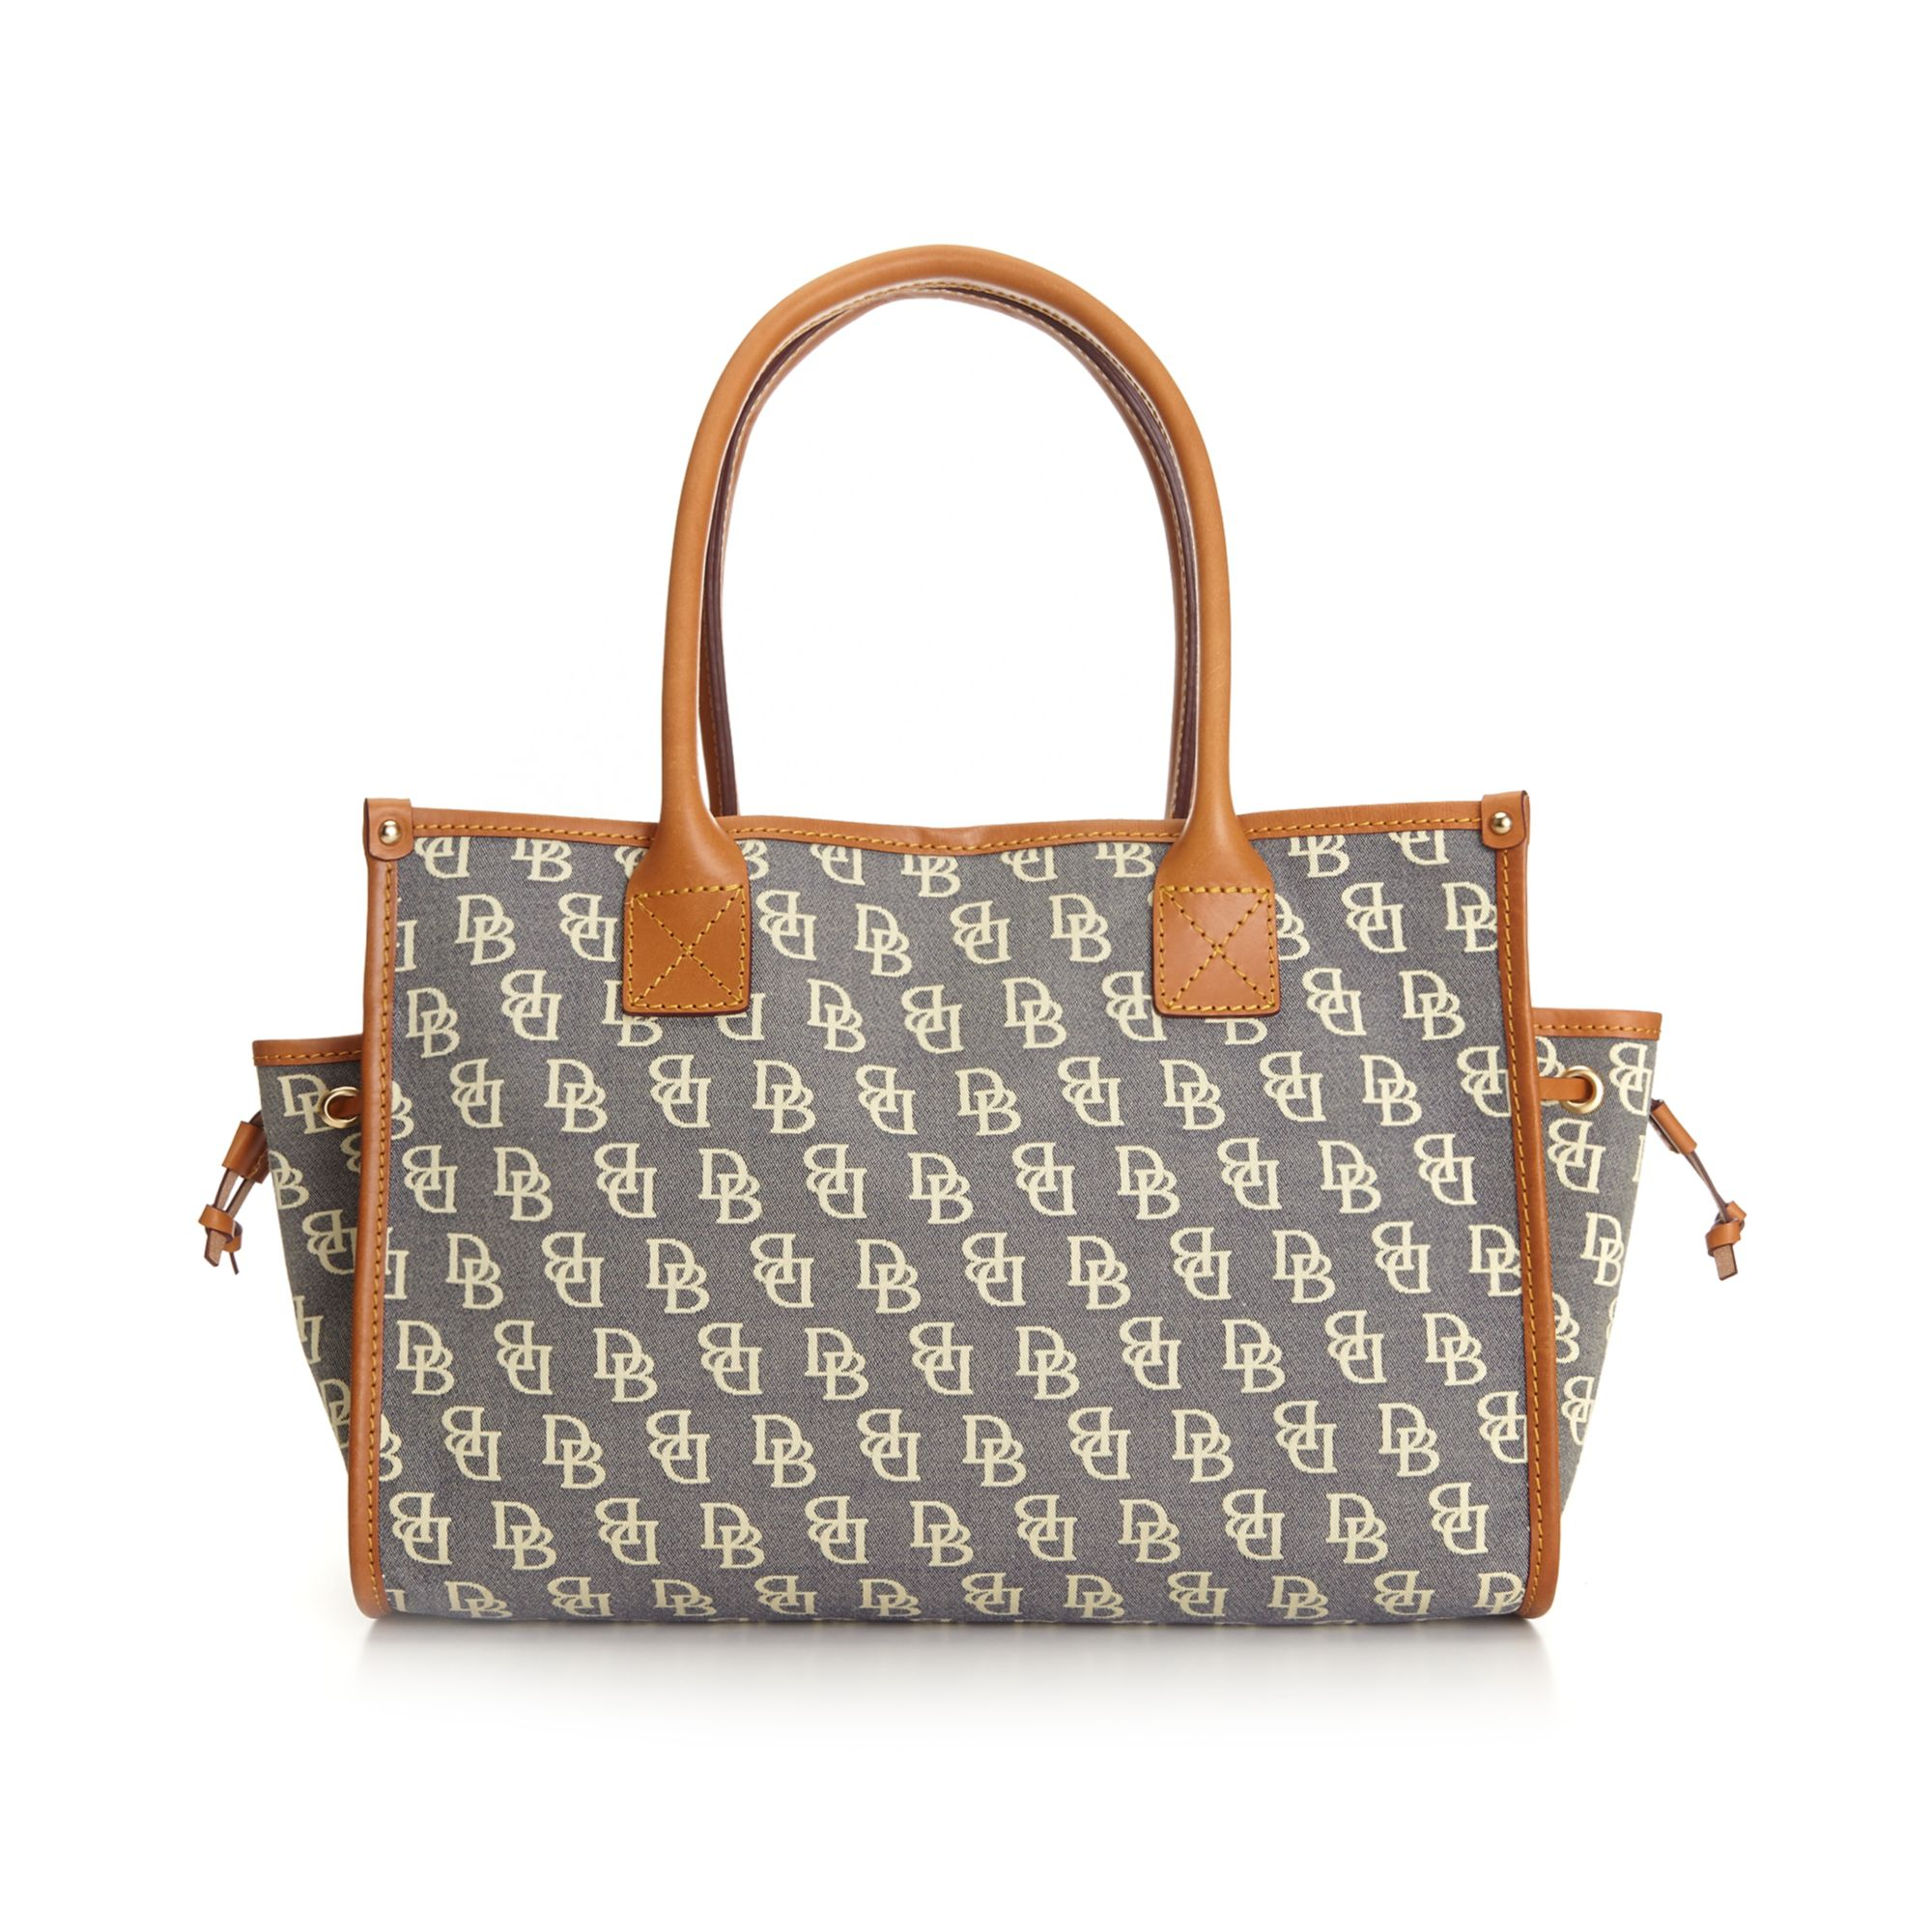 13df7a336 Dooney And Bourke Totes | Stanford Center for Opportunity Policy in ...